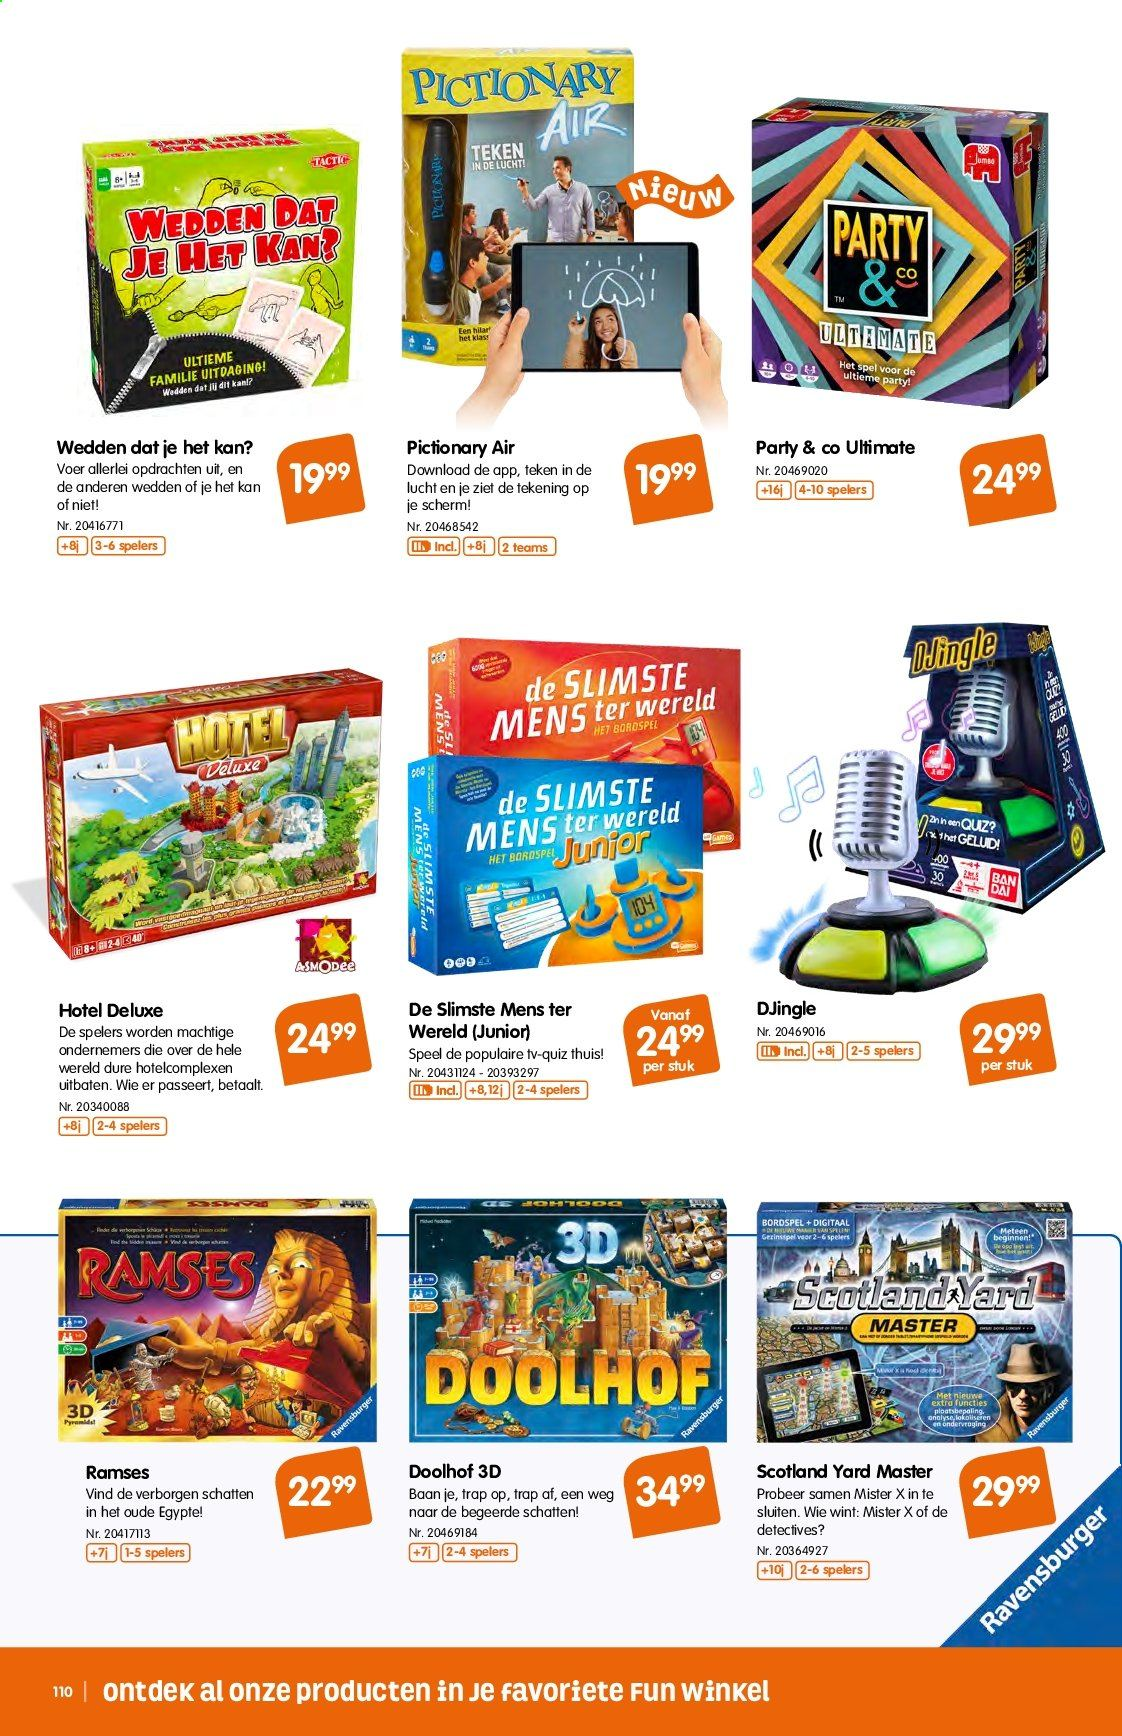 Fun-aanbieding - 9.10.2019 - 1.12.2019 -  producten in de aanbieding - mate, party & co, ravensburger, tv. Pagina 110.